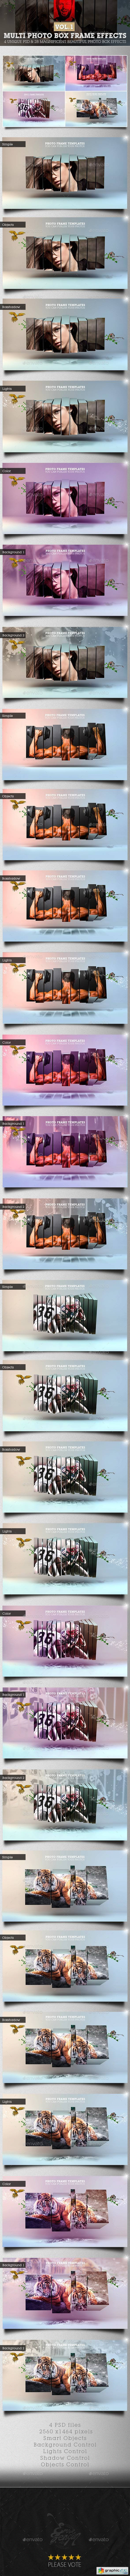 Multi Photo Box Frame Effects Vol1